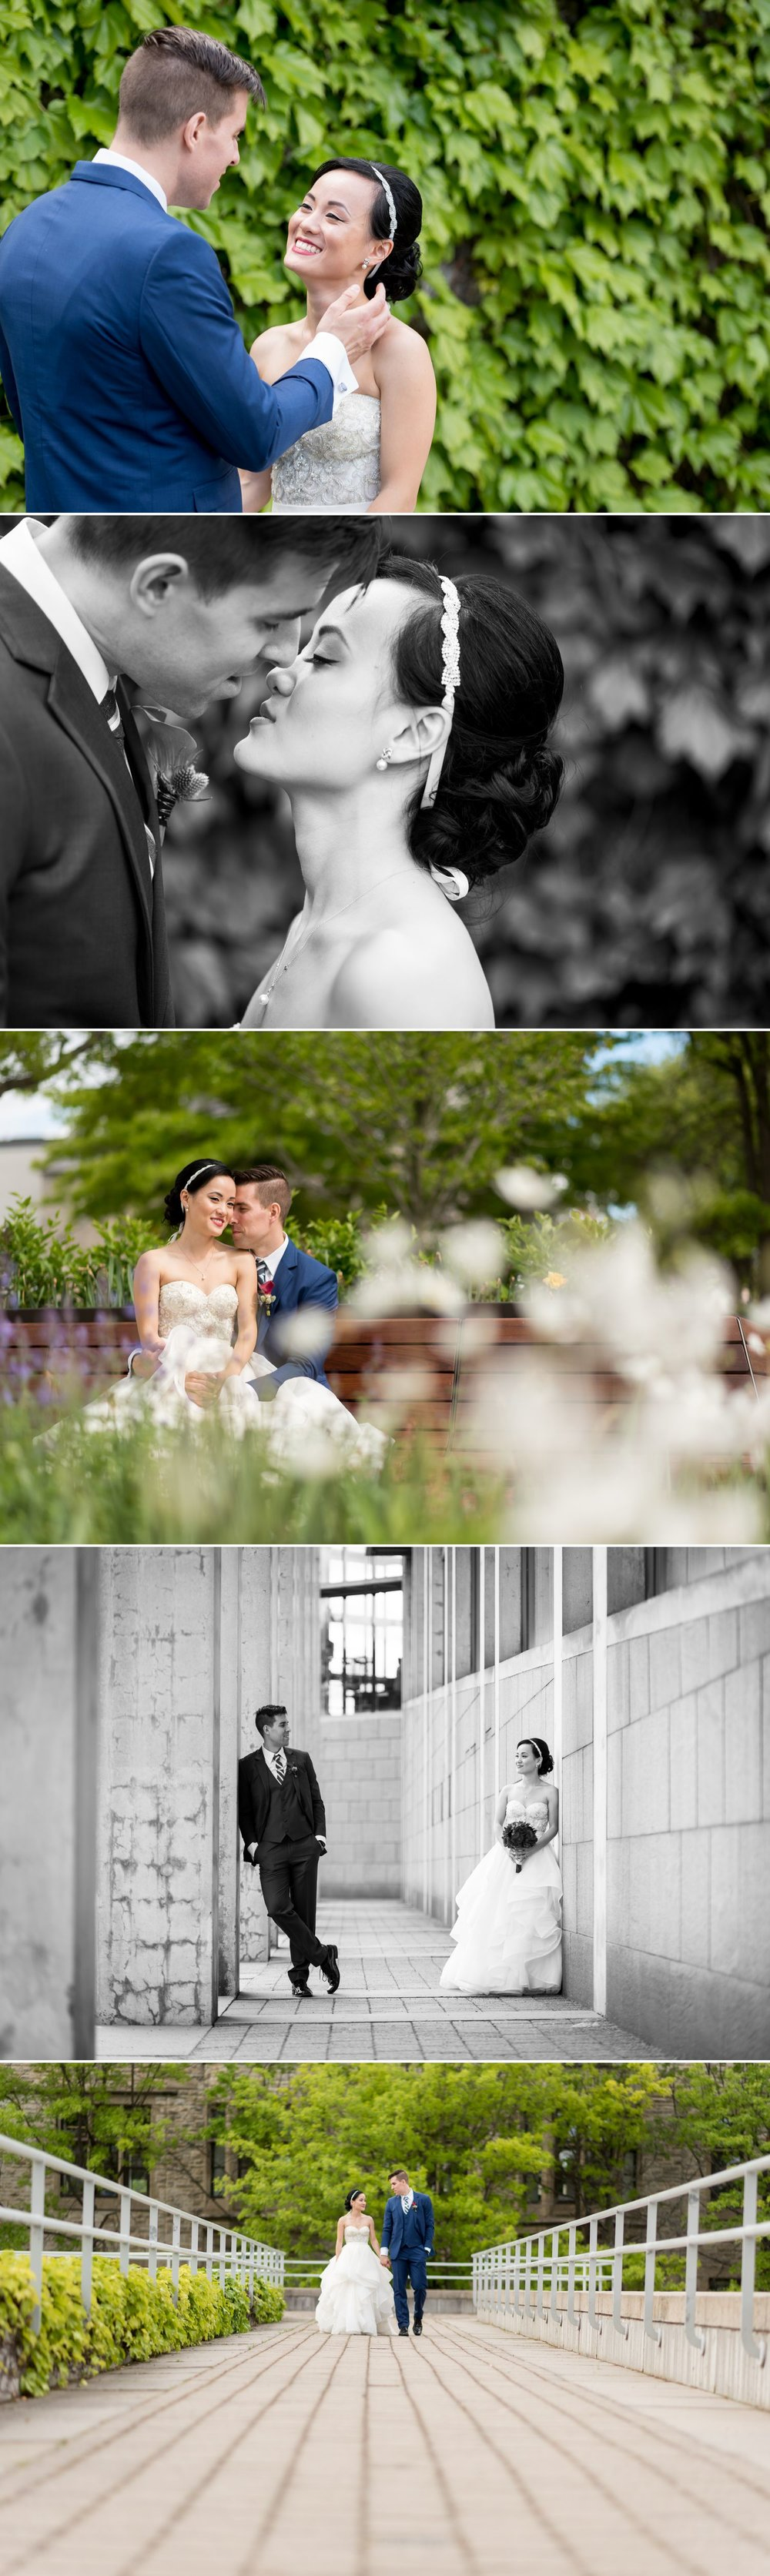 Outdoor wedding portraits of the bride and groom in downtown Ottawa